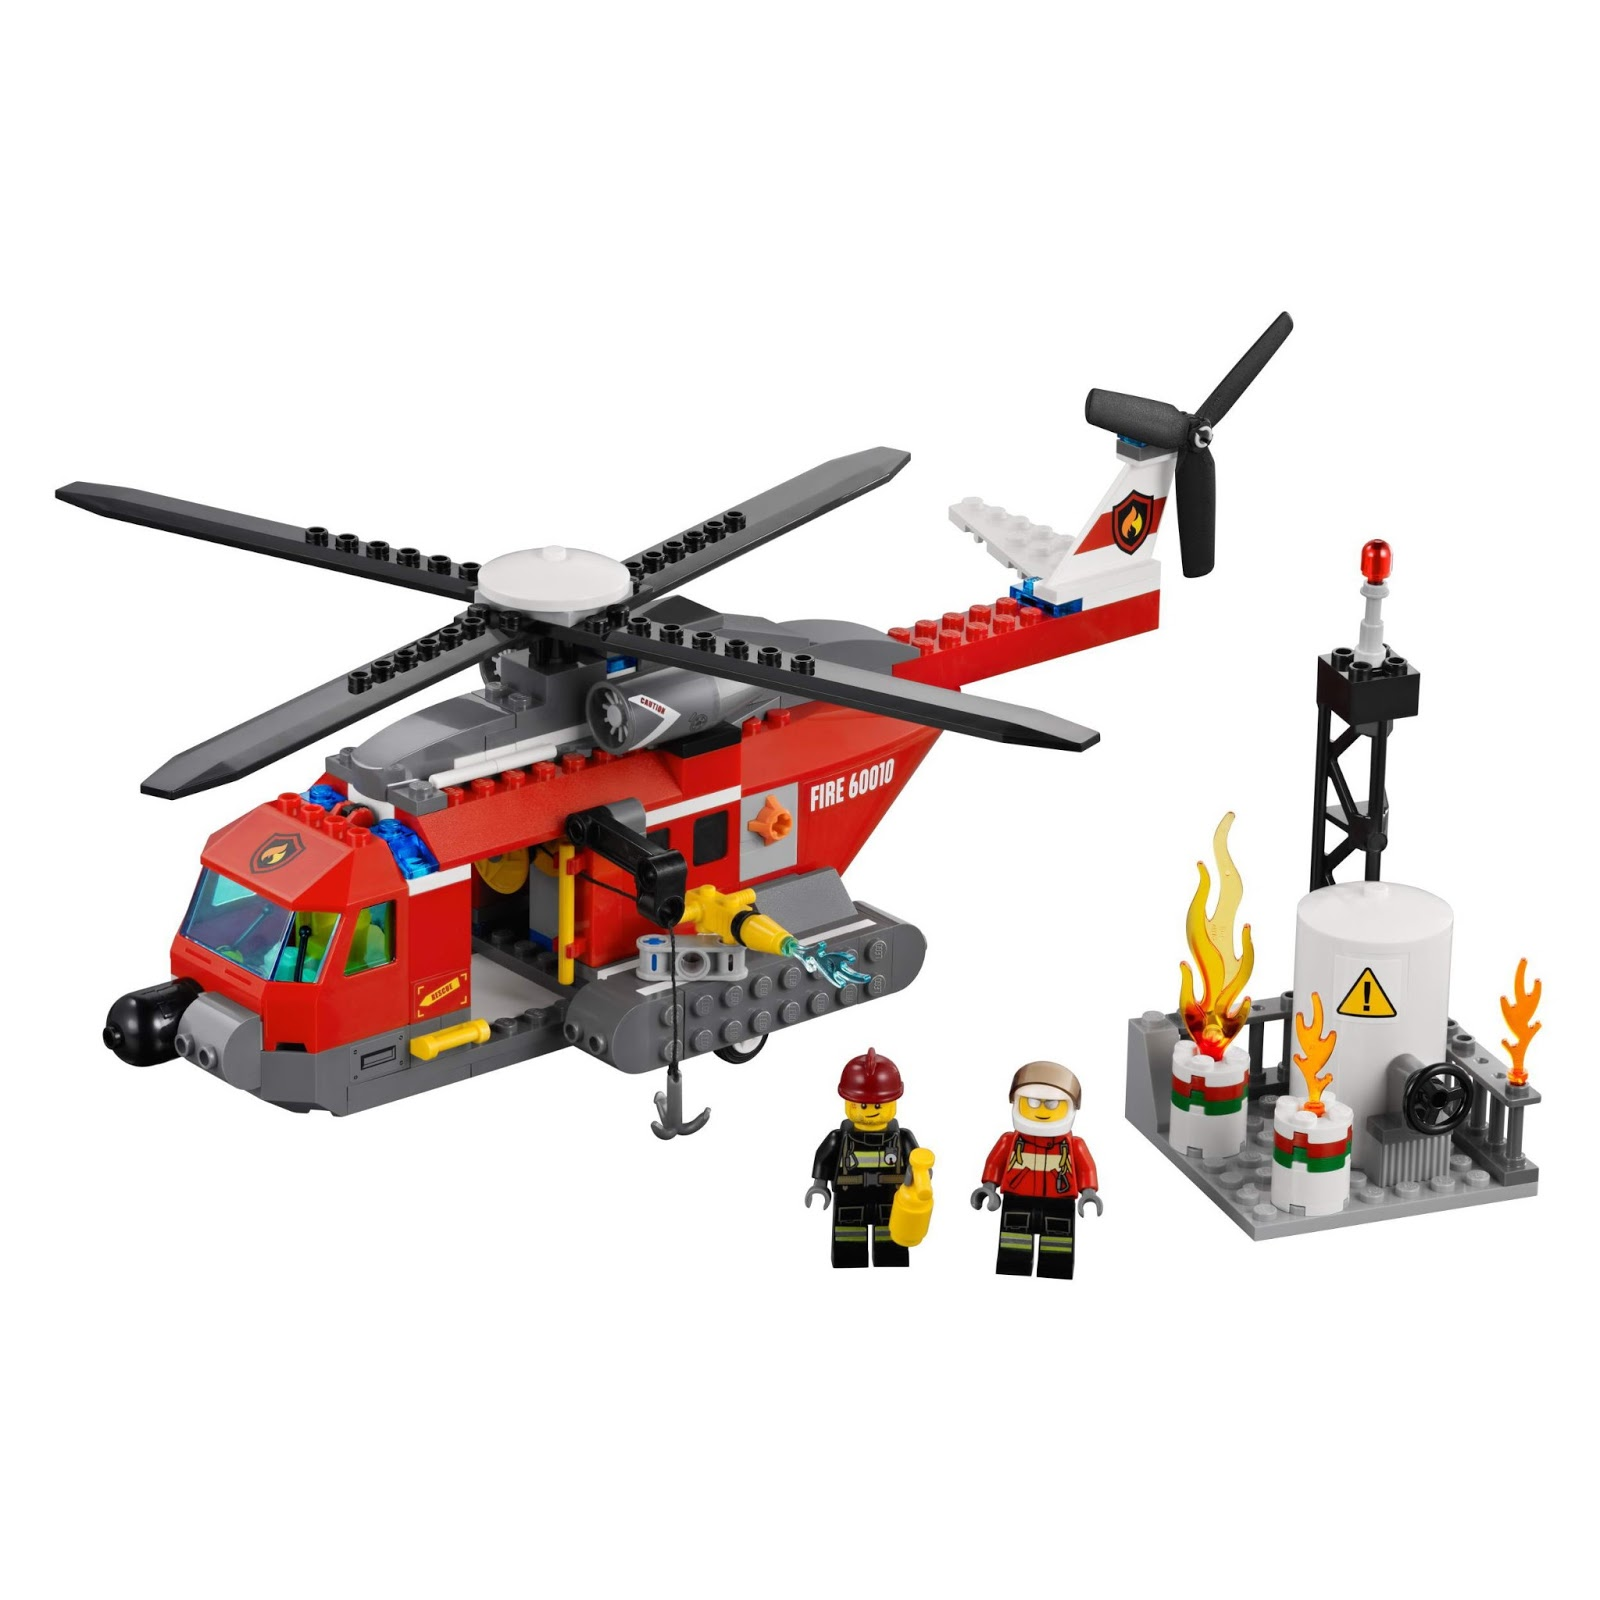 lego creator 3 in 1 helicopter with Set Database Lego 60010 Fire Helicopter on 11295335394 furthermore 113123 also Lego 7893 Vliegtuig together with Lego City Helicoptero De Policia 3658 further 60162 Jungle Air Drop Helicopter Quelques Visuels Set Lego City Tres Reussi.